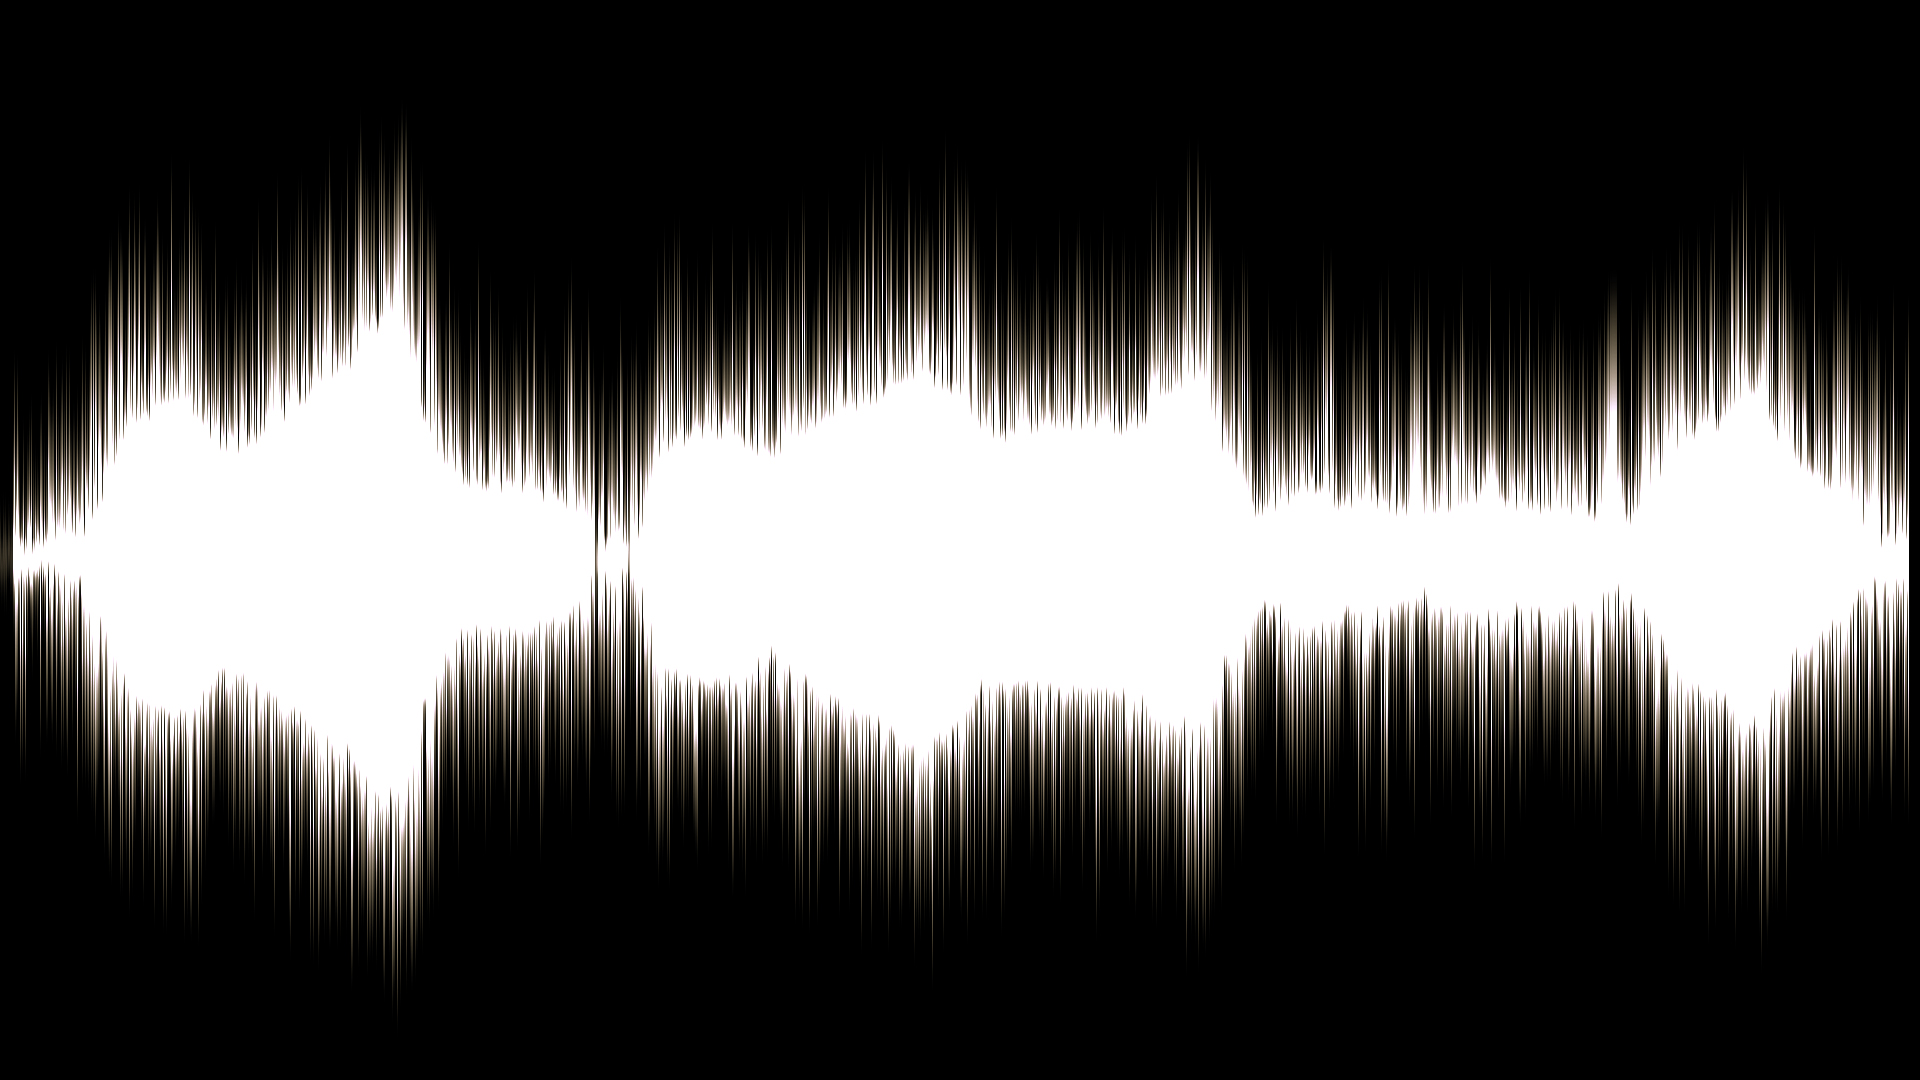 Sound Waves Music Hd for Pinterest 1920x1080